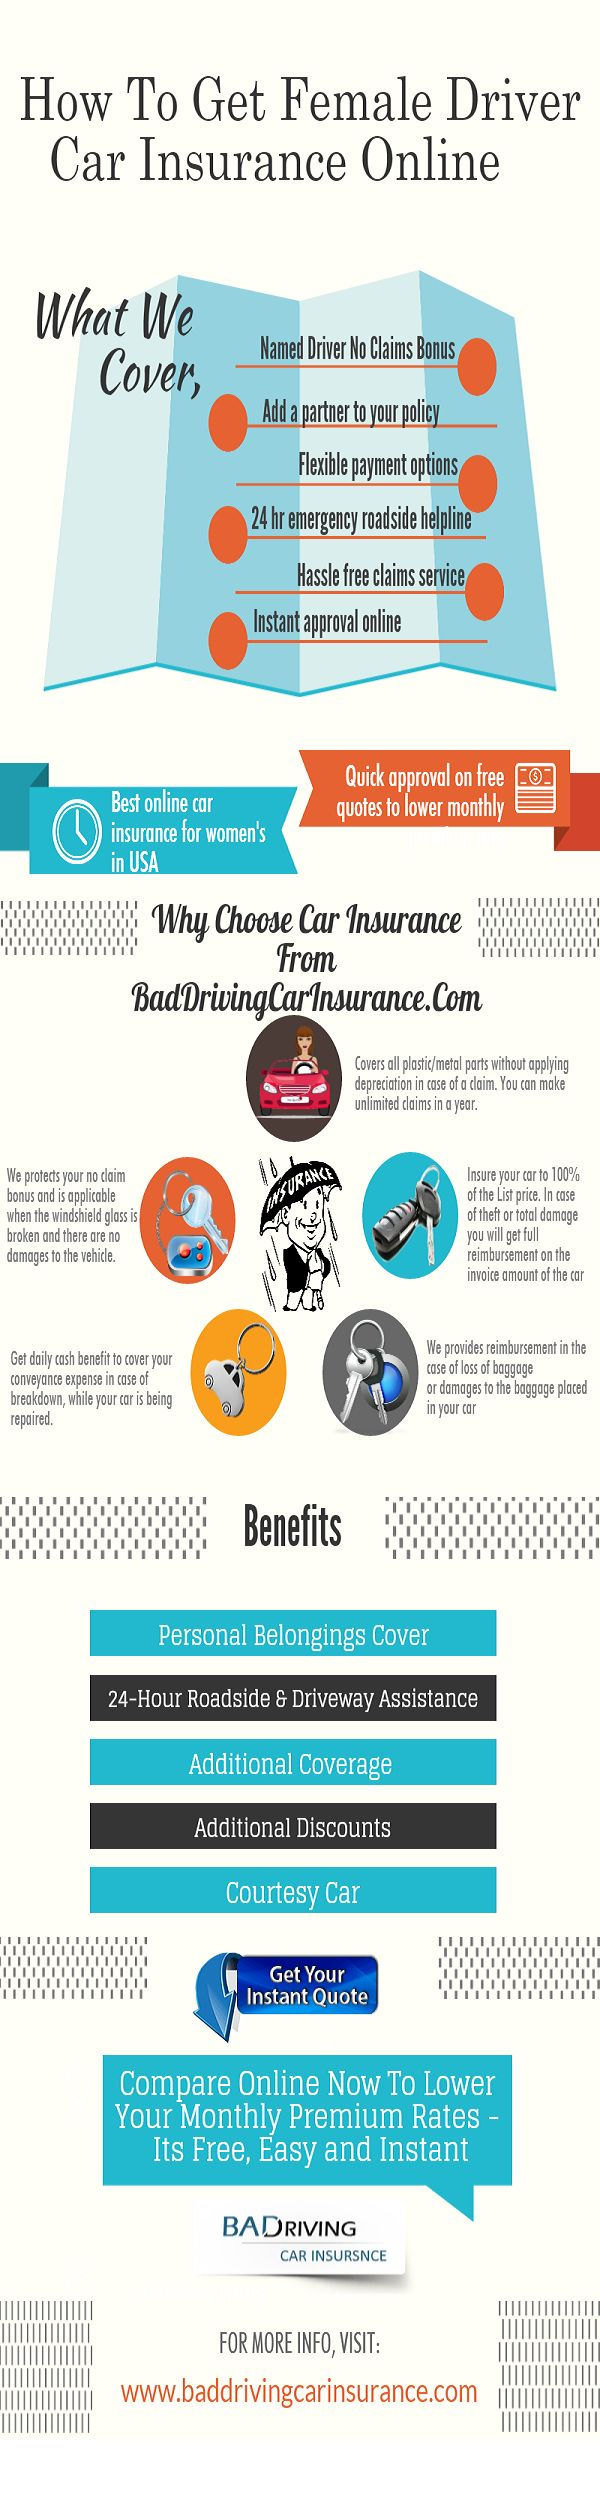 Best car insurance for young female drivers